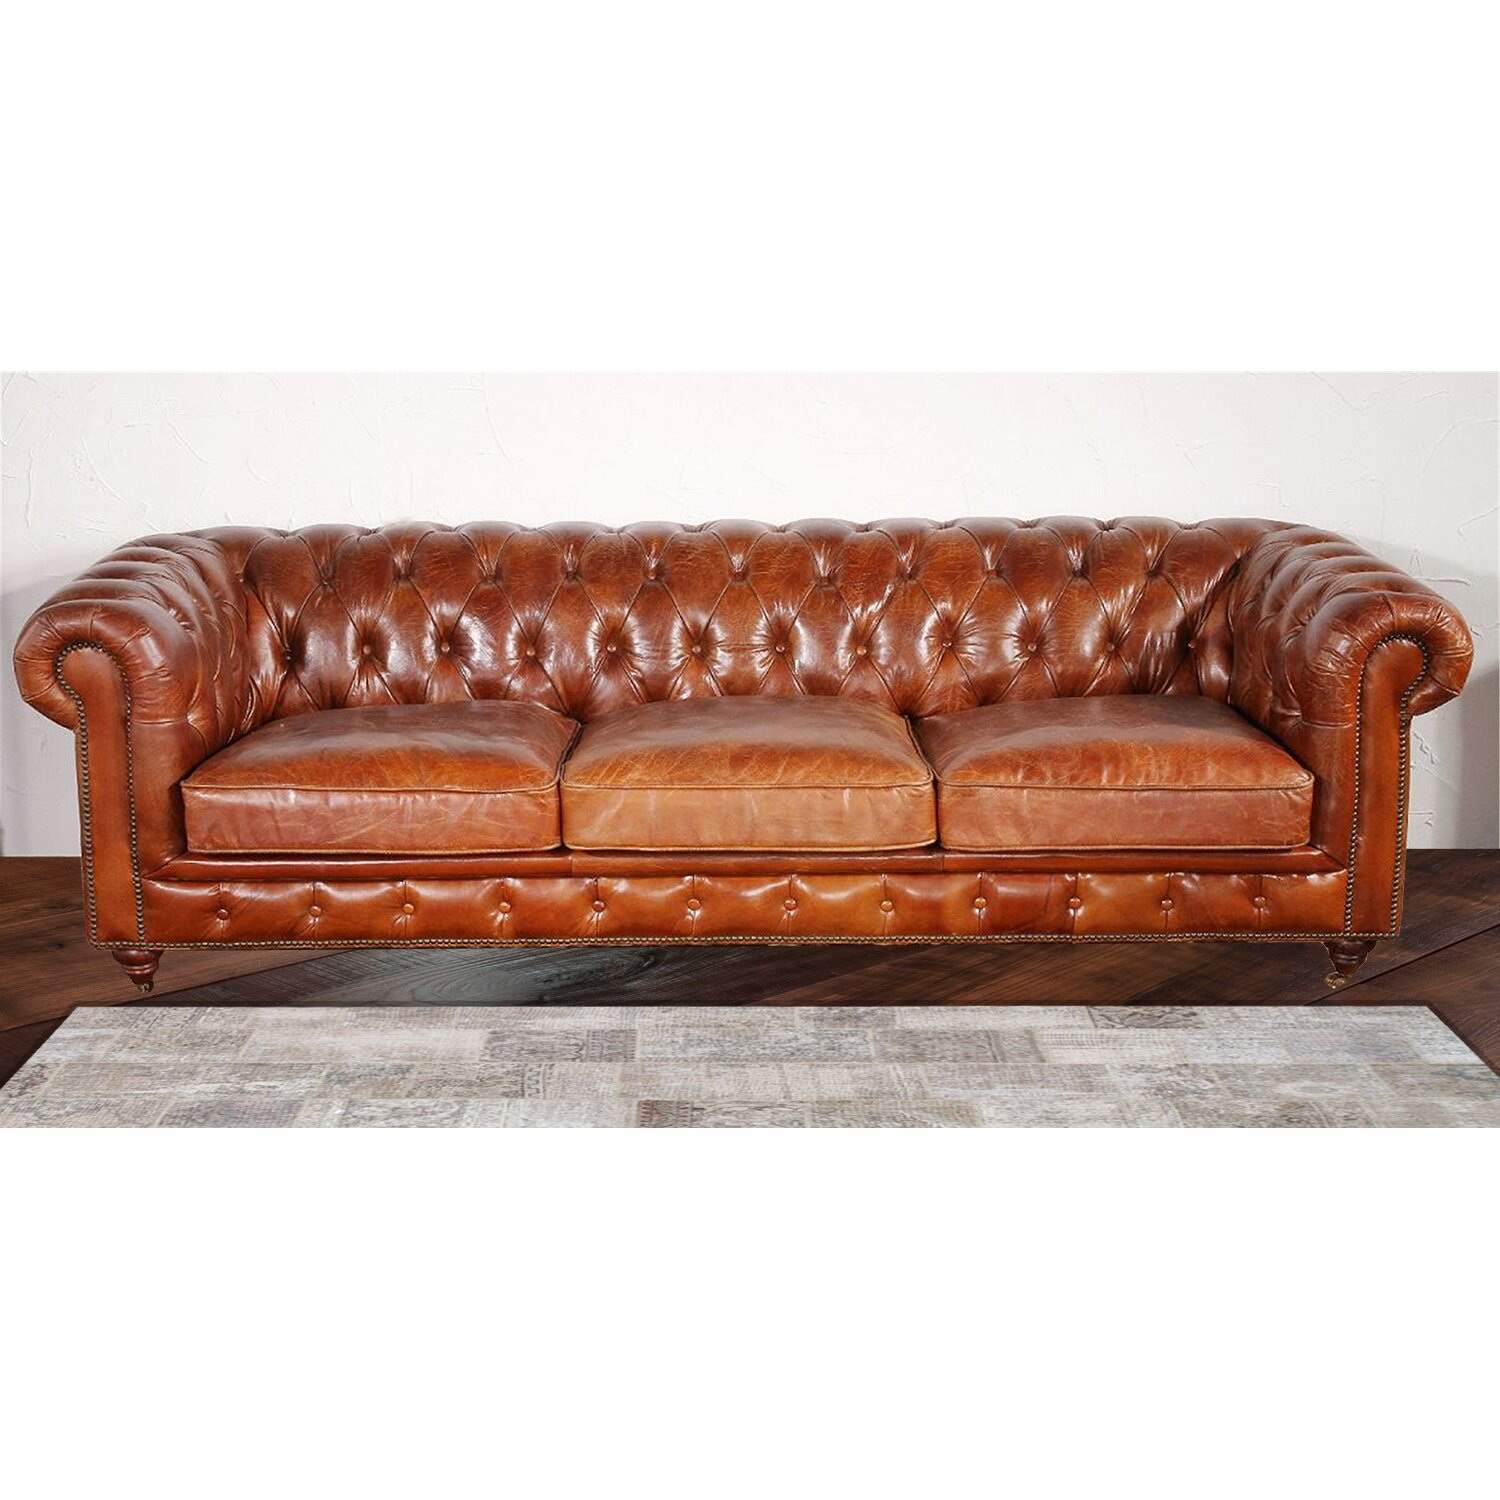 Tufted Leather Sofa Bed: Pasargad Chester Bay Tufted Genuine Leather Sofa & Reviews